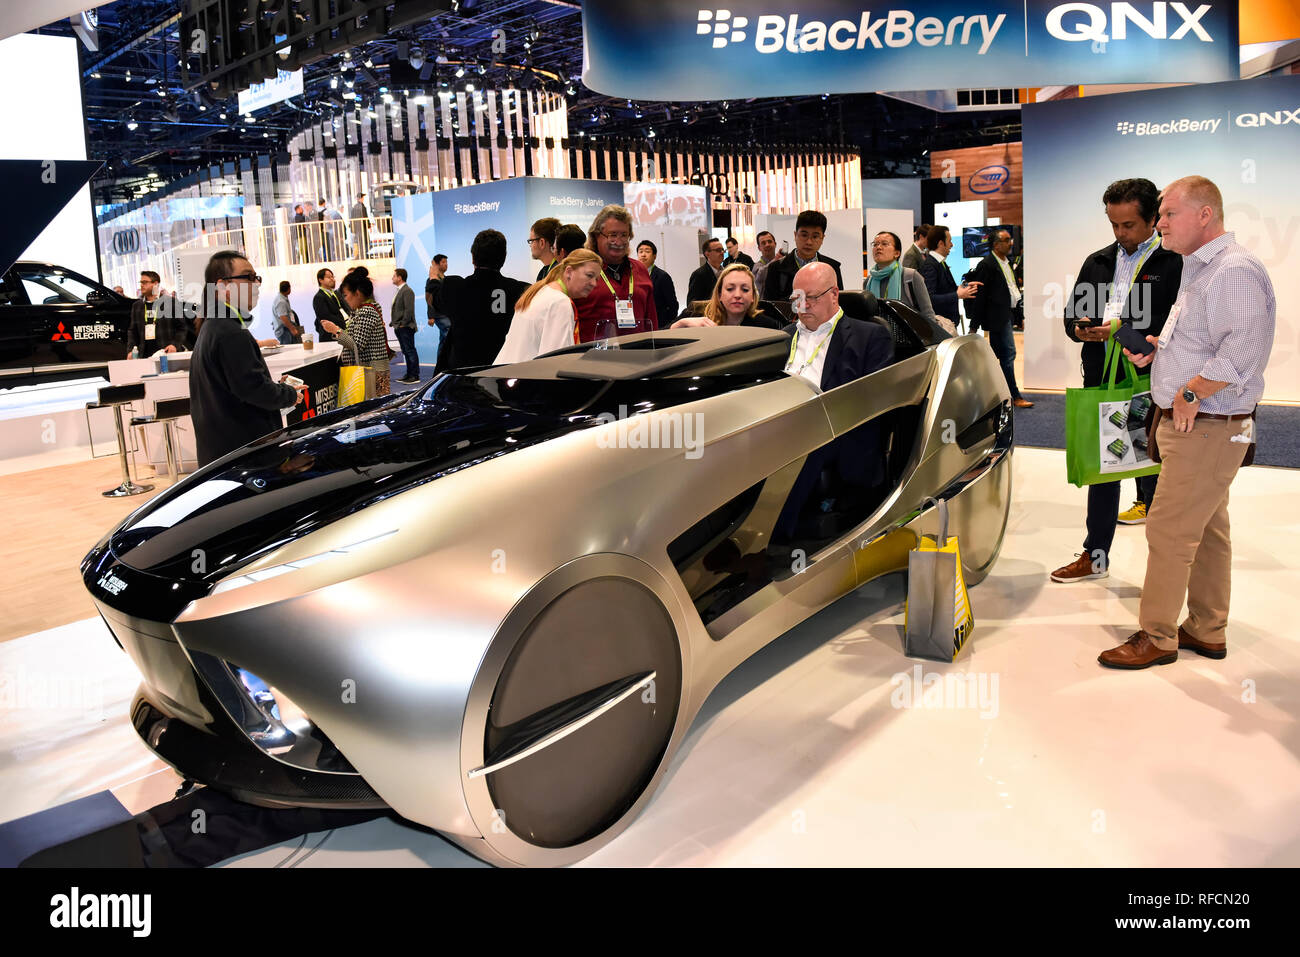 Mitsubishi Electric Concept Car at the 2019 CES Consumer Electronics Show in Las Vegas, Nevada - Stock Image